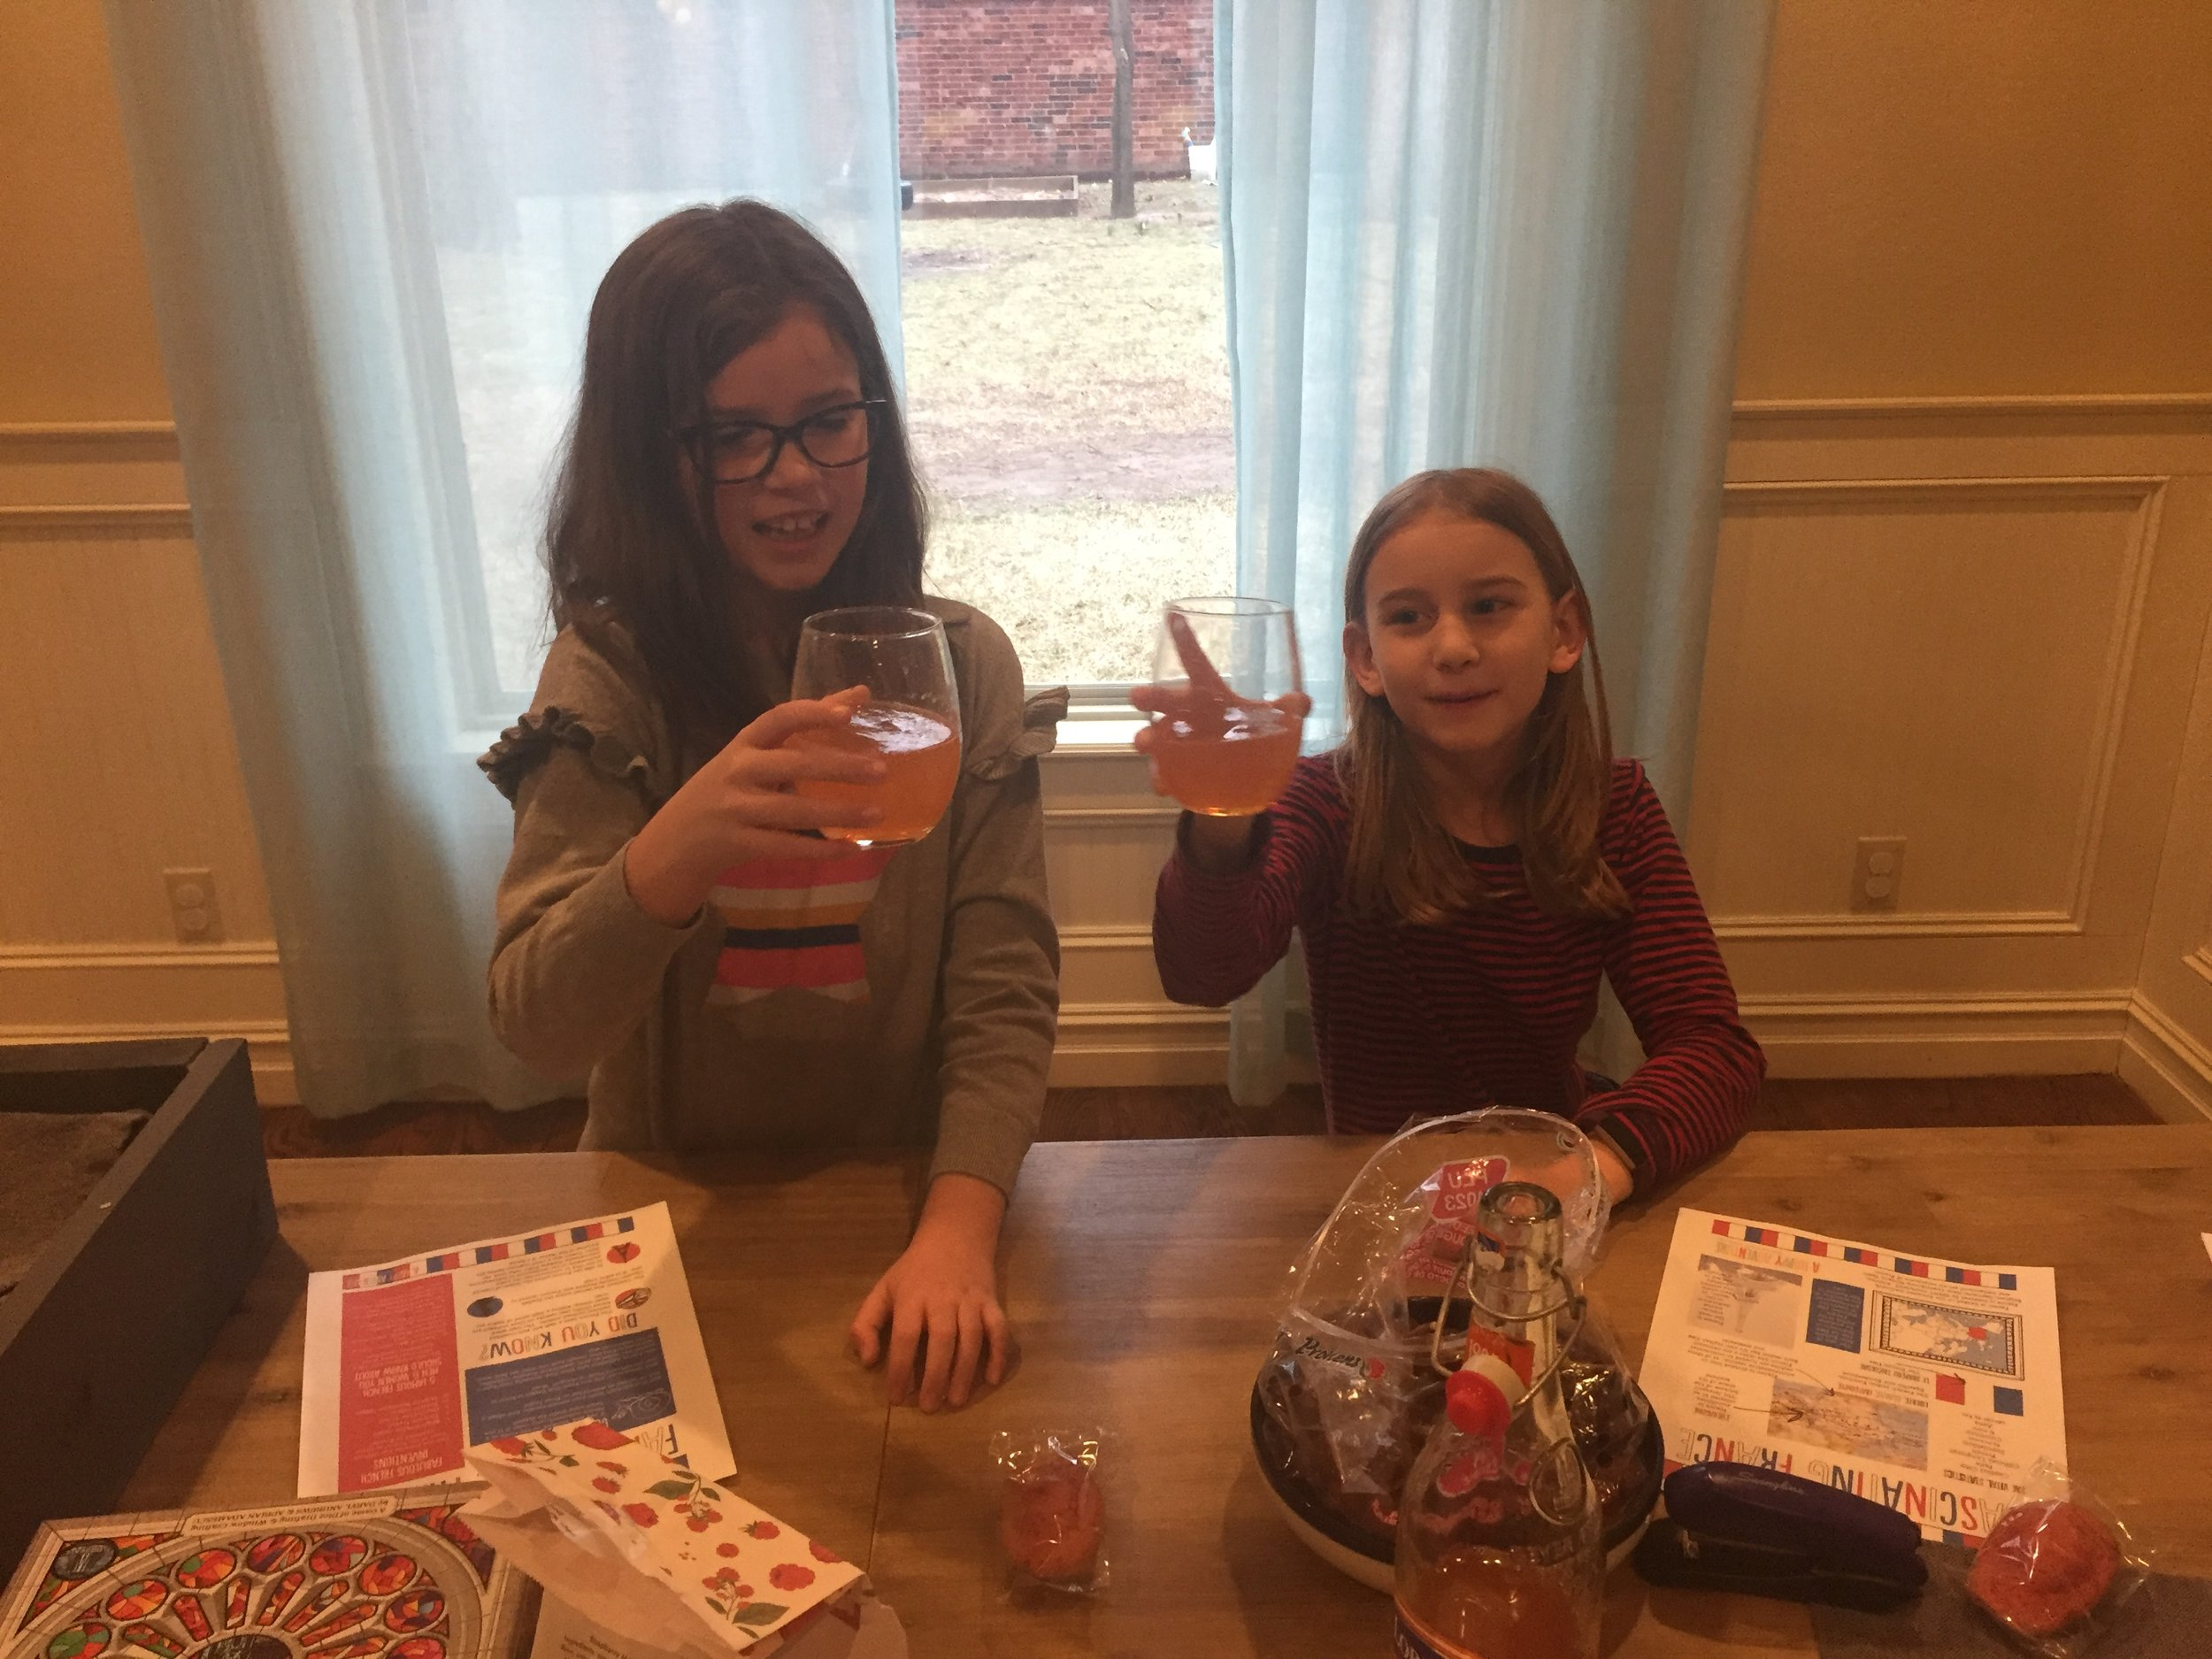 French soda and treats for World Thinking Day =) Abby and Serenity loved drawing paper doll dresses and learning about French Fashion Design.